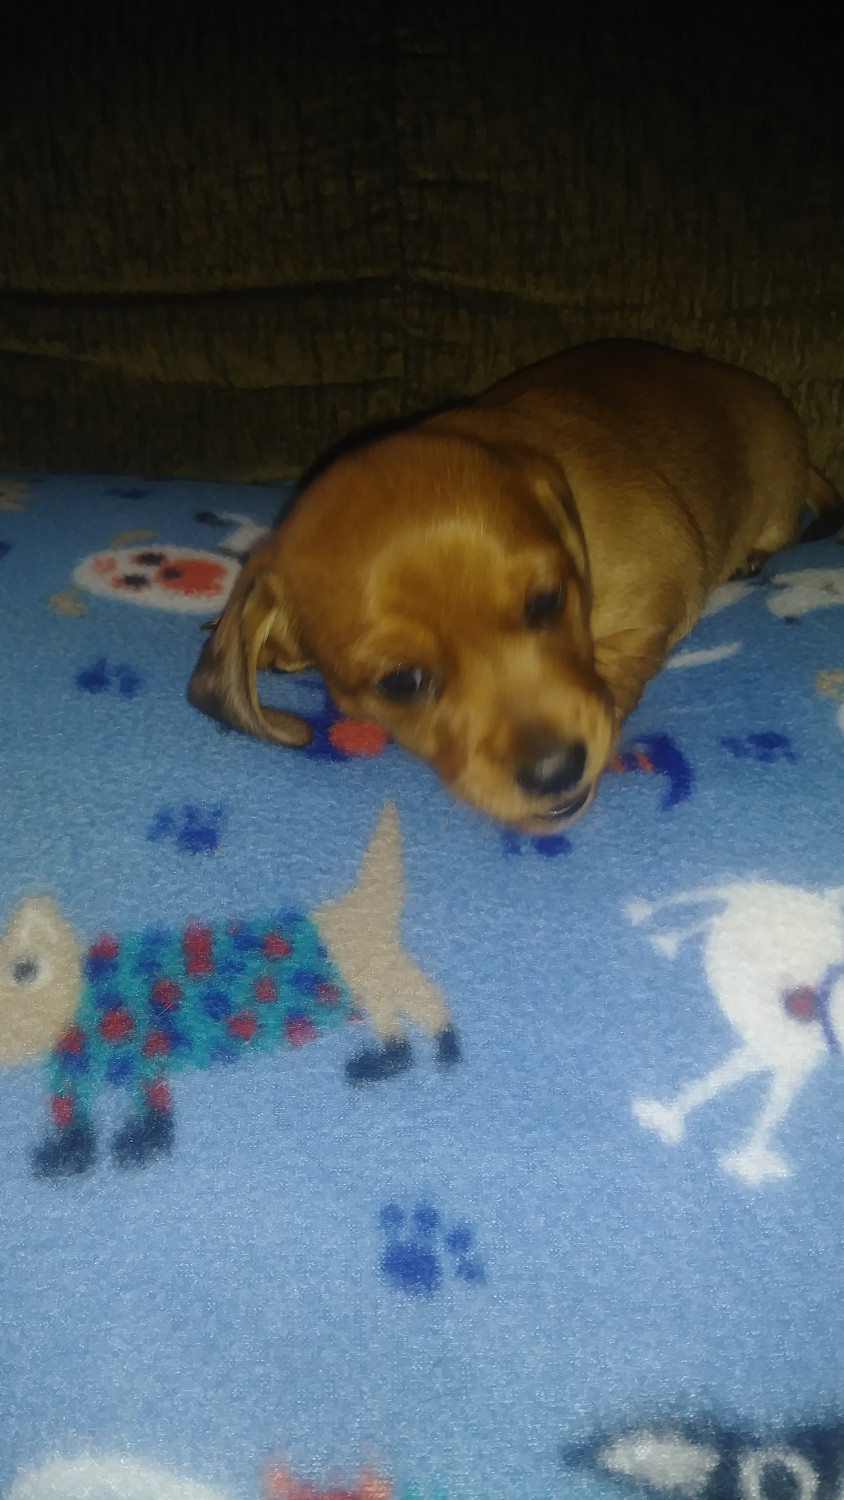 Dachshund Puppies For Sale In Michigan : dachshund, puppies, michigan, Dachshund, Puppies, Holly,, #285351, Petzlover